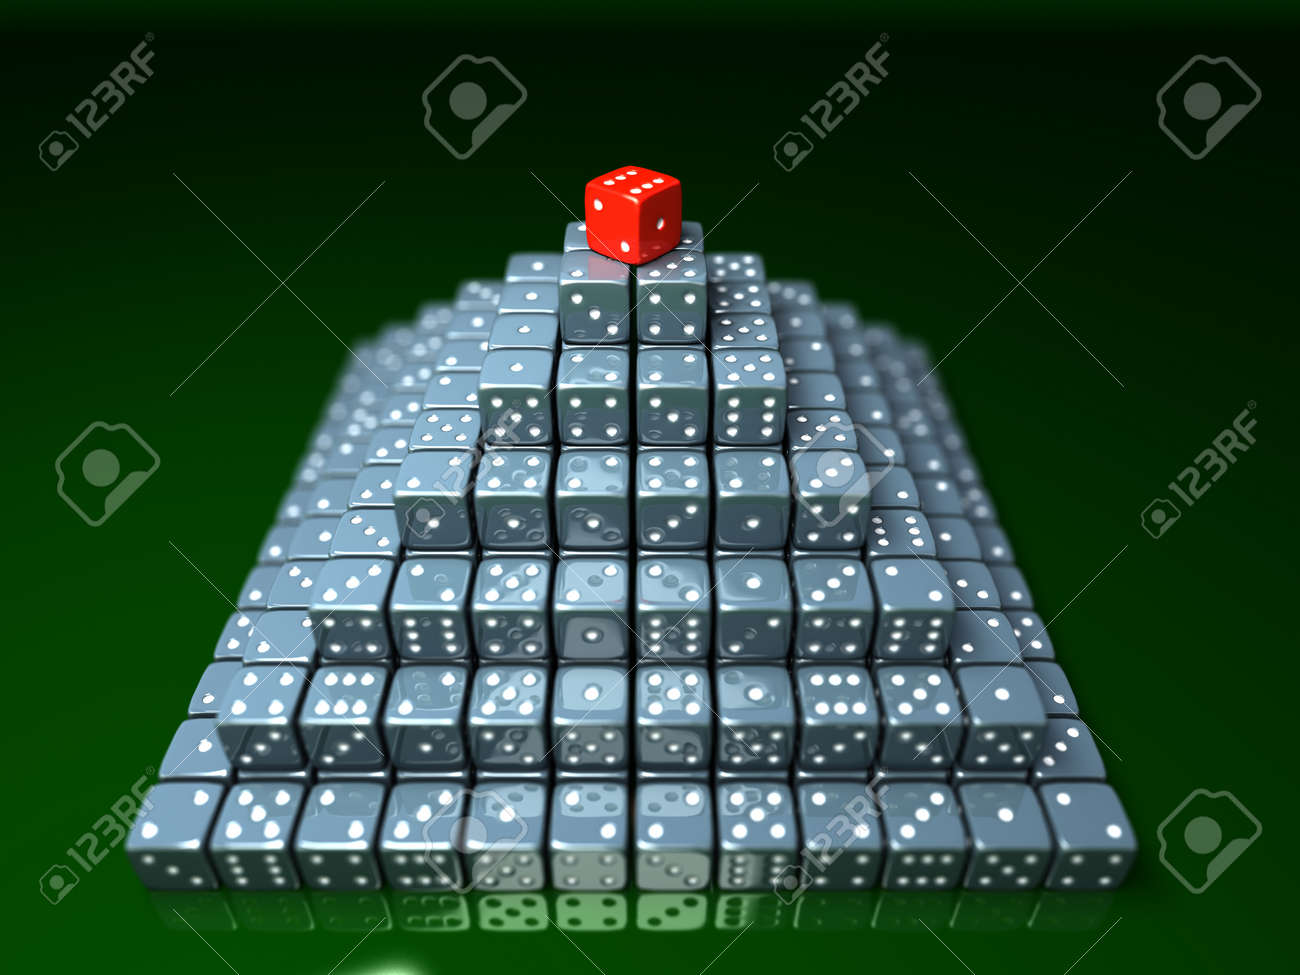 Pyramide made of dice on game table in a casino - 37202499